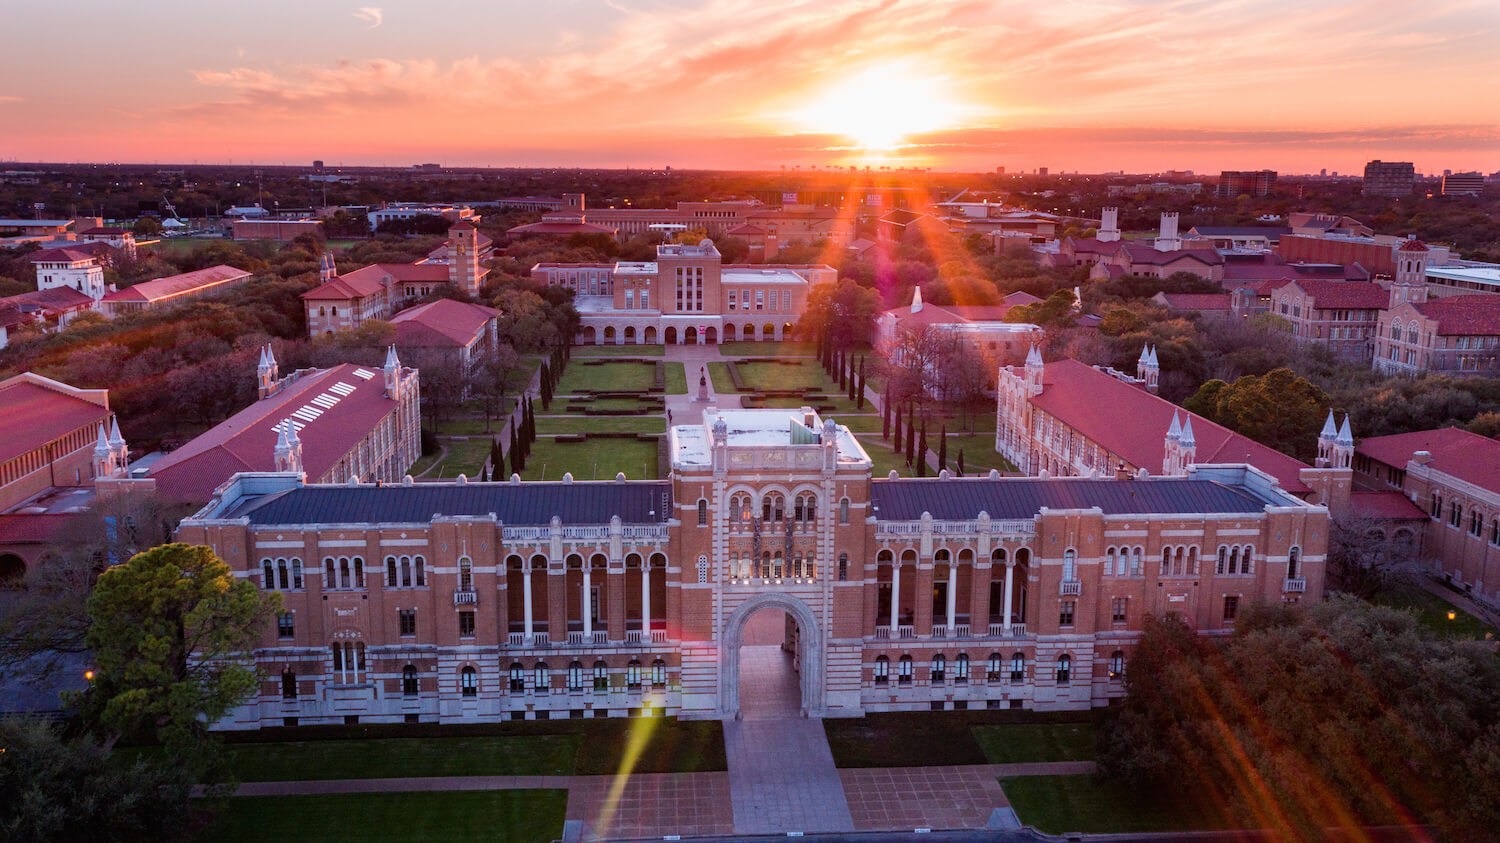 The Rice University campus at sunset. (Courtesy photo)